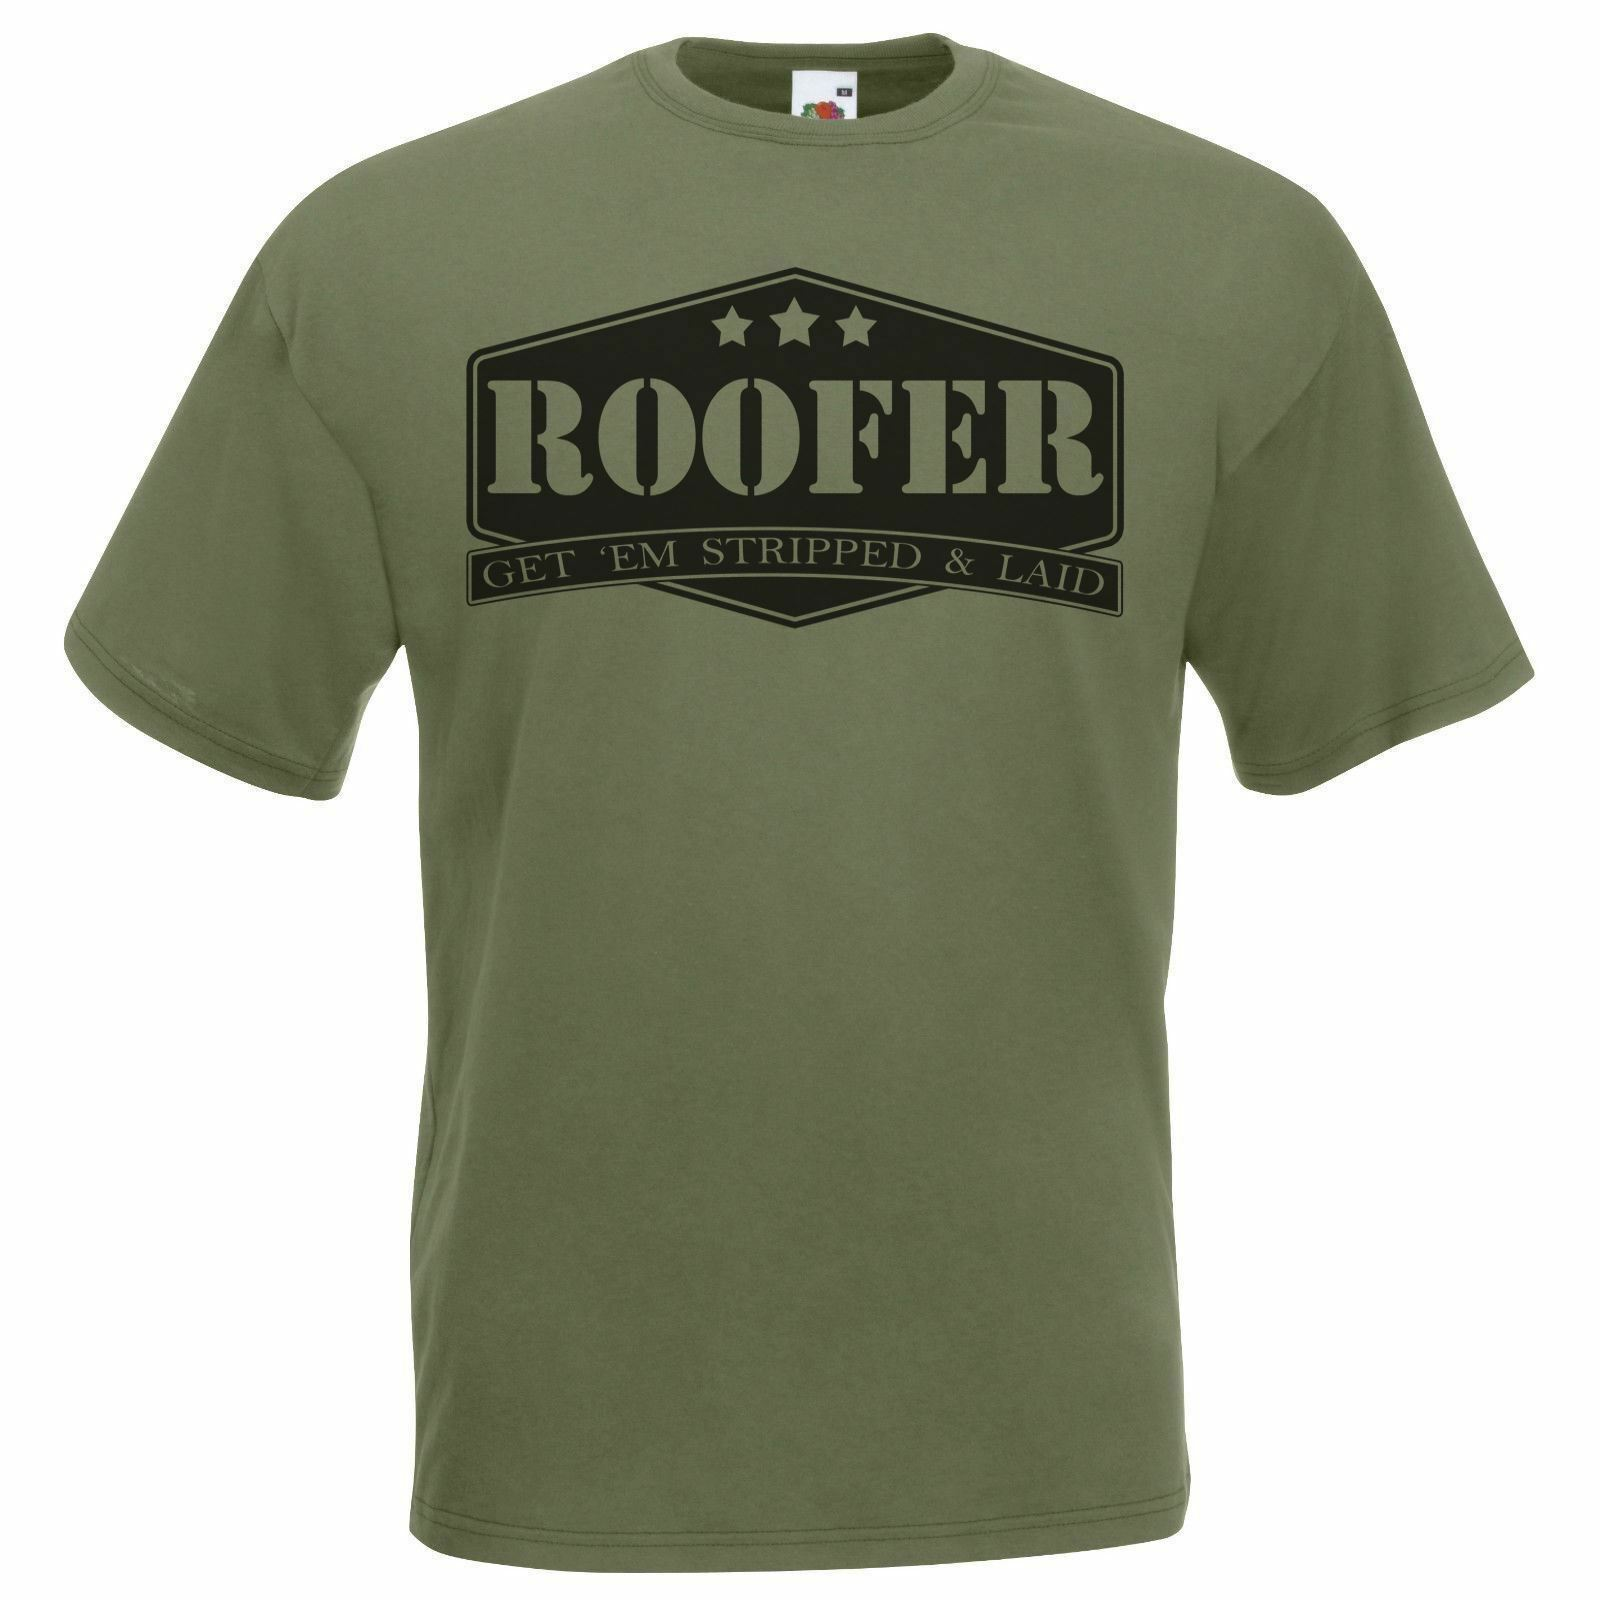 0a58e4090f Mens Olive Green Roofer T-Shirt Construction Worker Christmas Gift X-Mas  Idea Funny free shipping Unisex